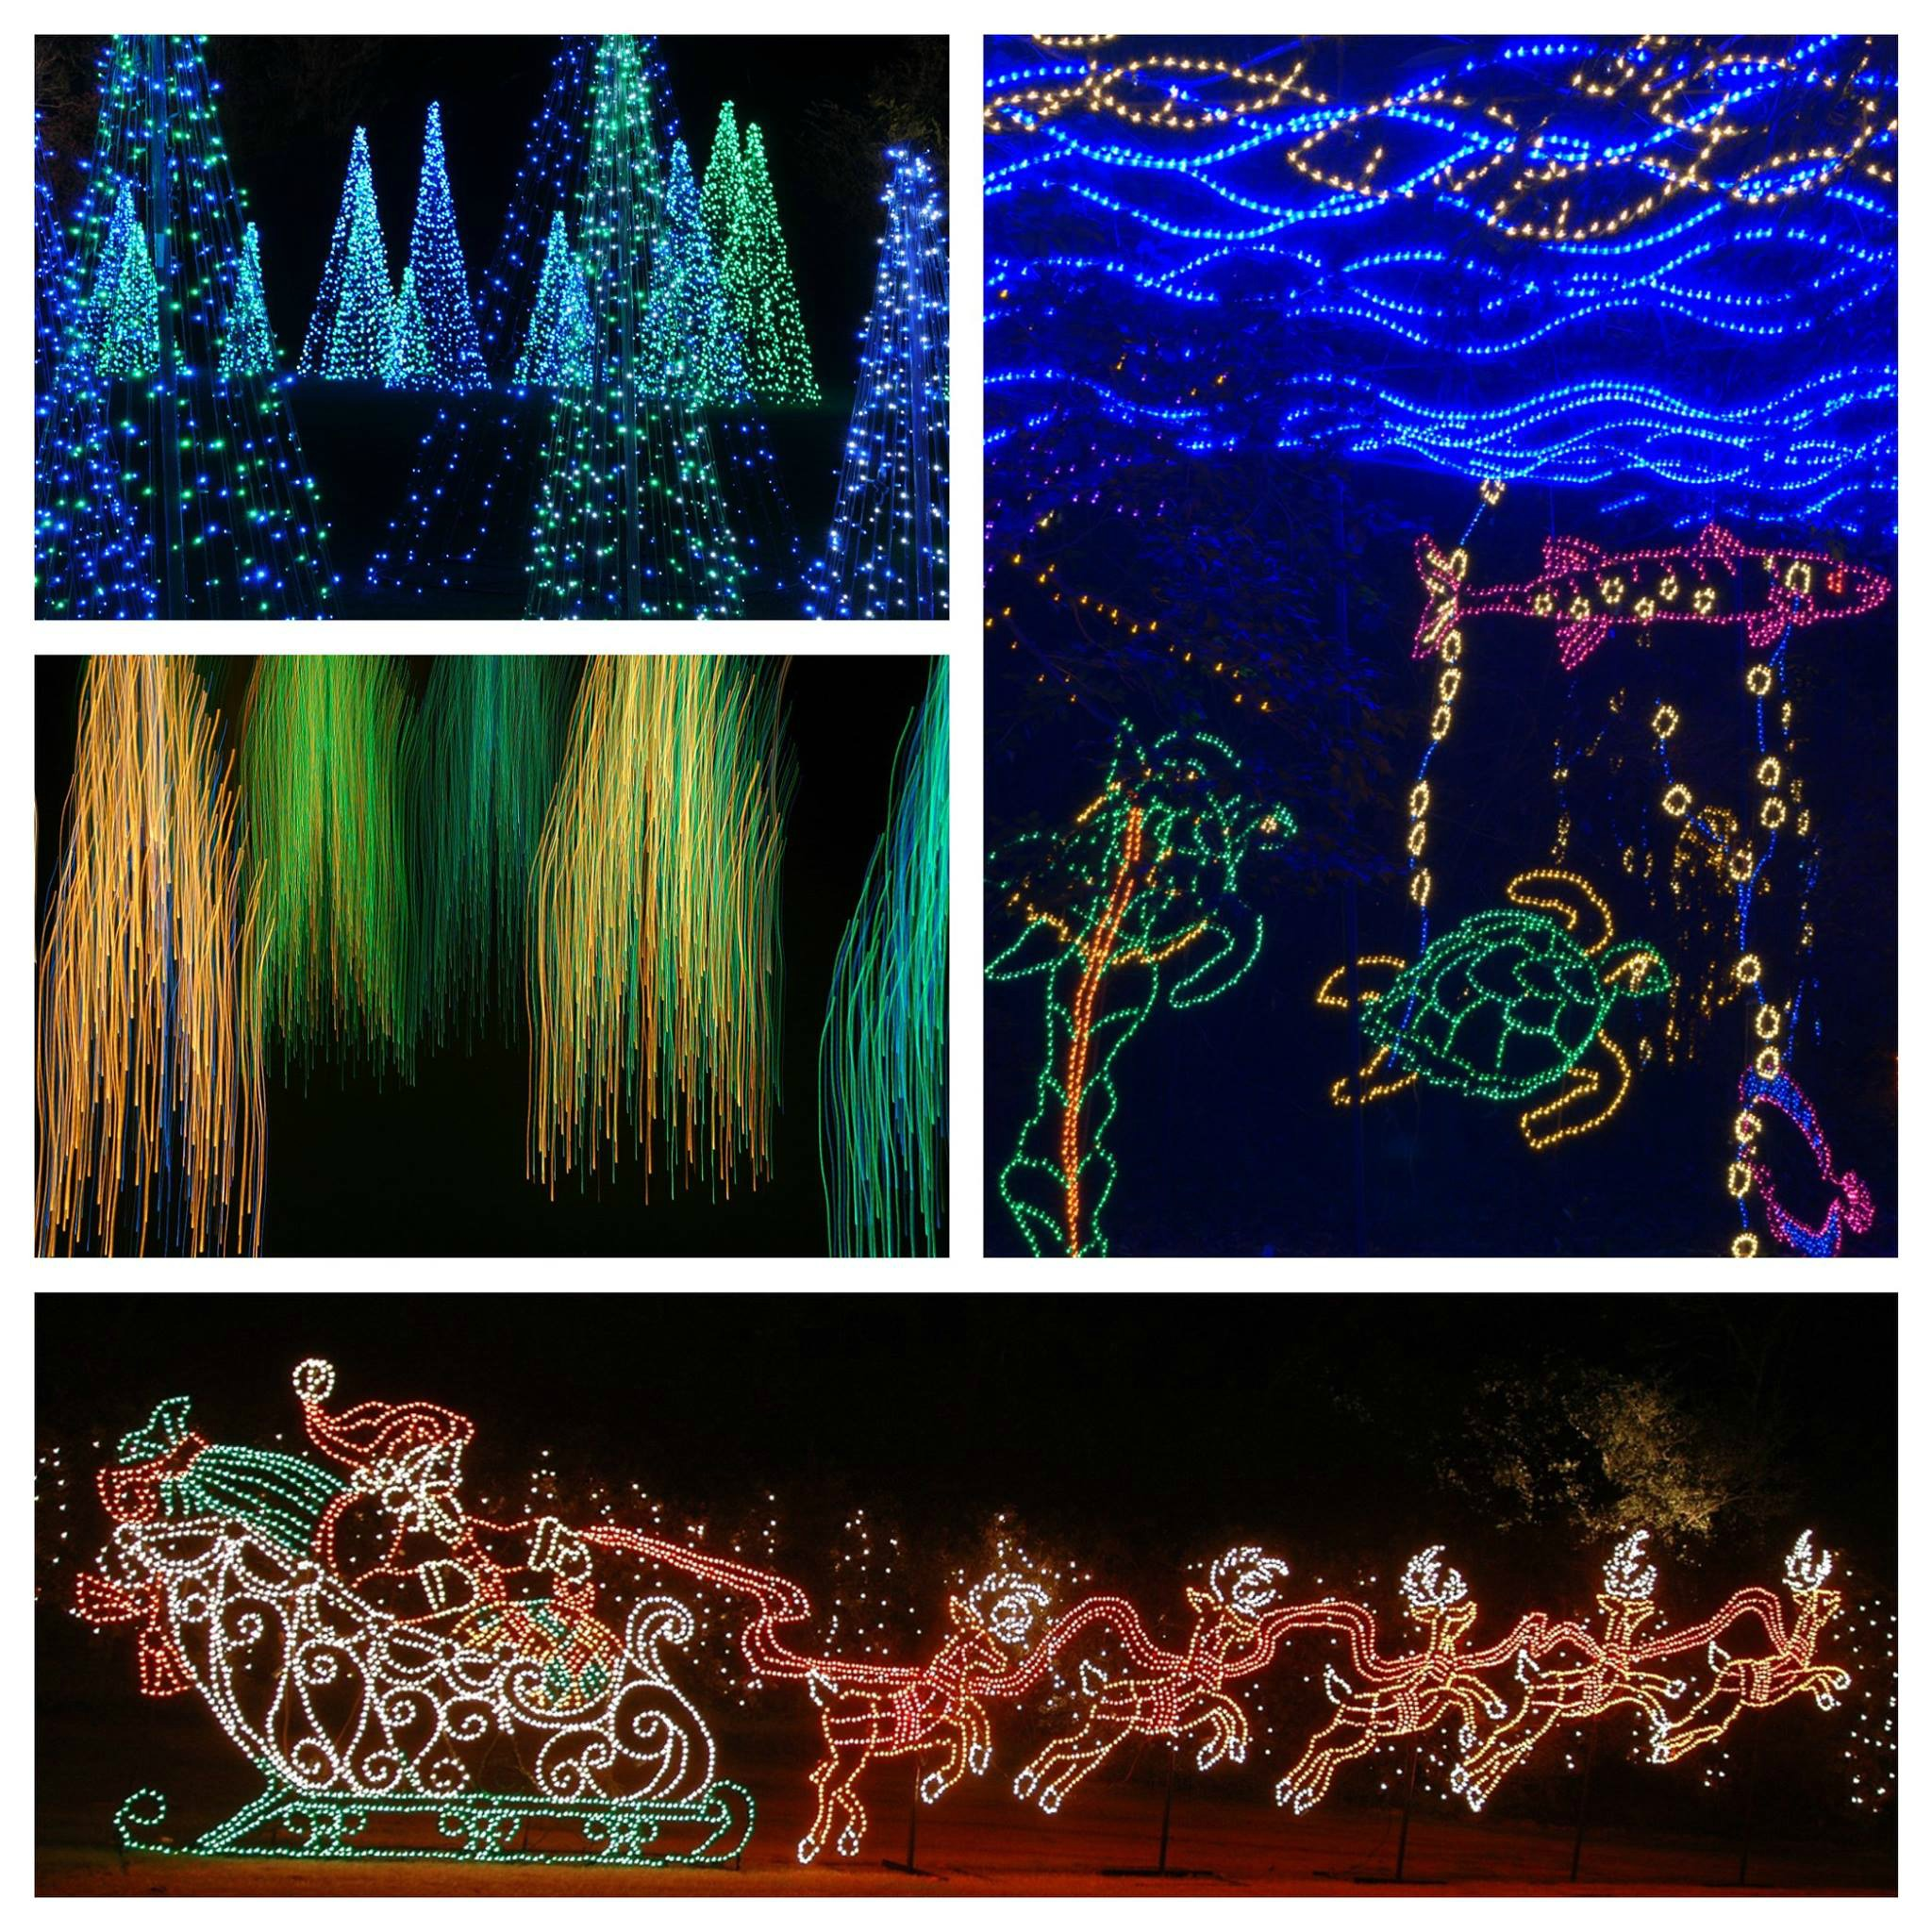 Bellingrath Gardens Magic Christmas in Lights collage of four different displays